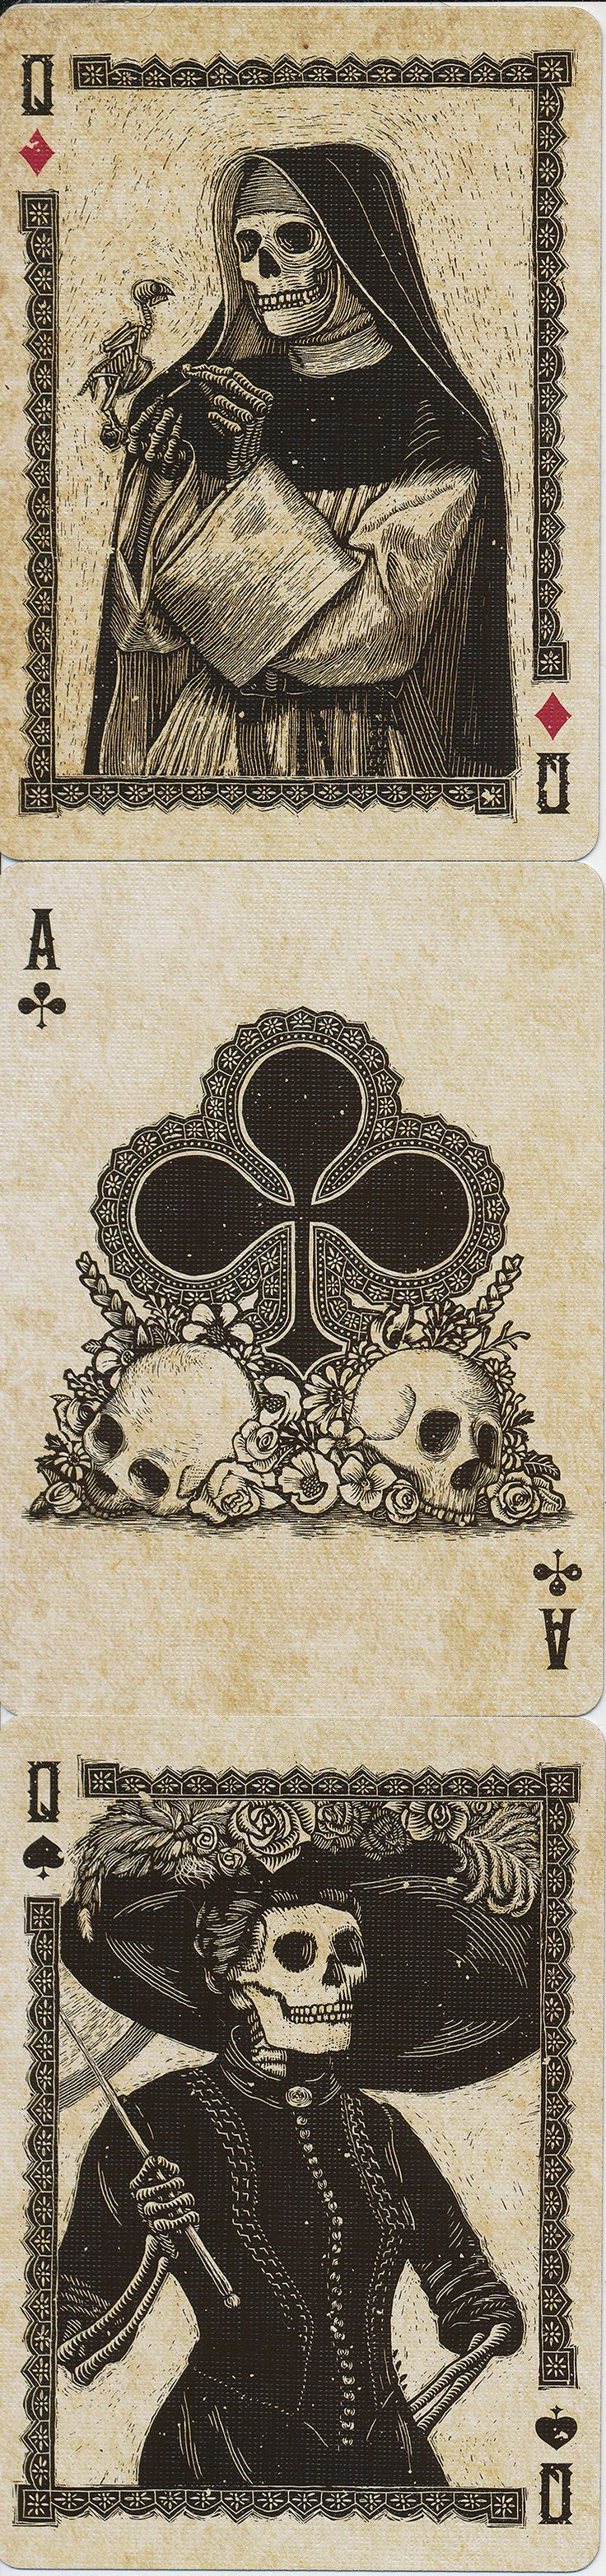 Calaveras Playing Cards Designed by Chris Ovdiyenko